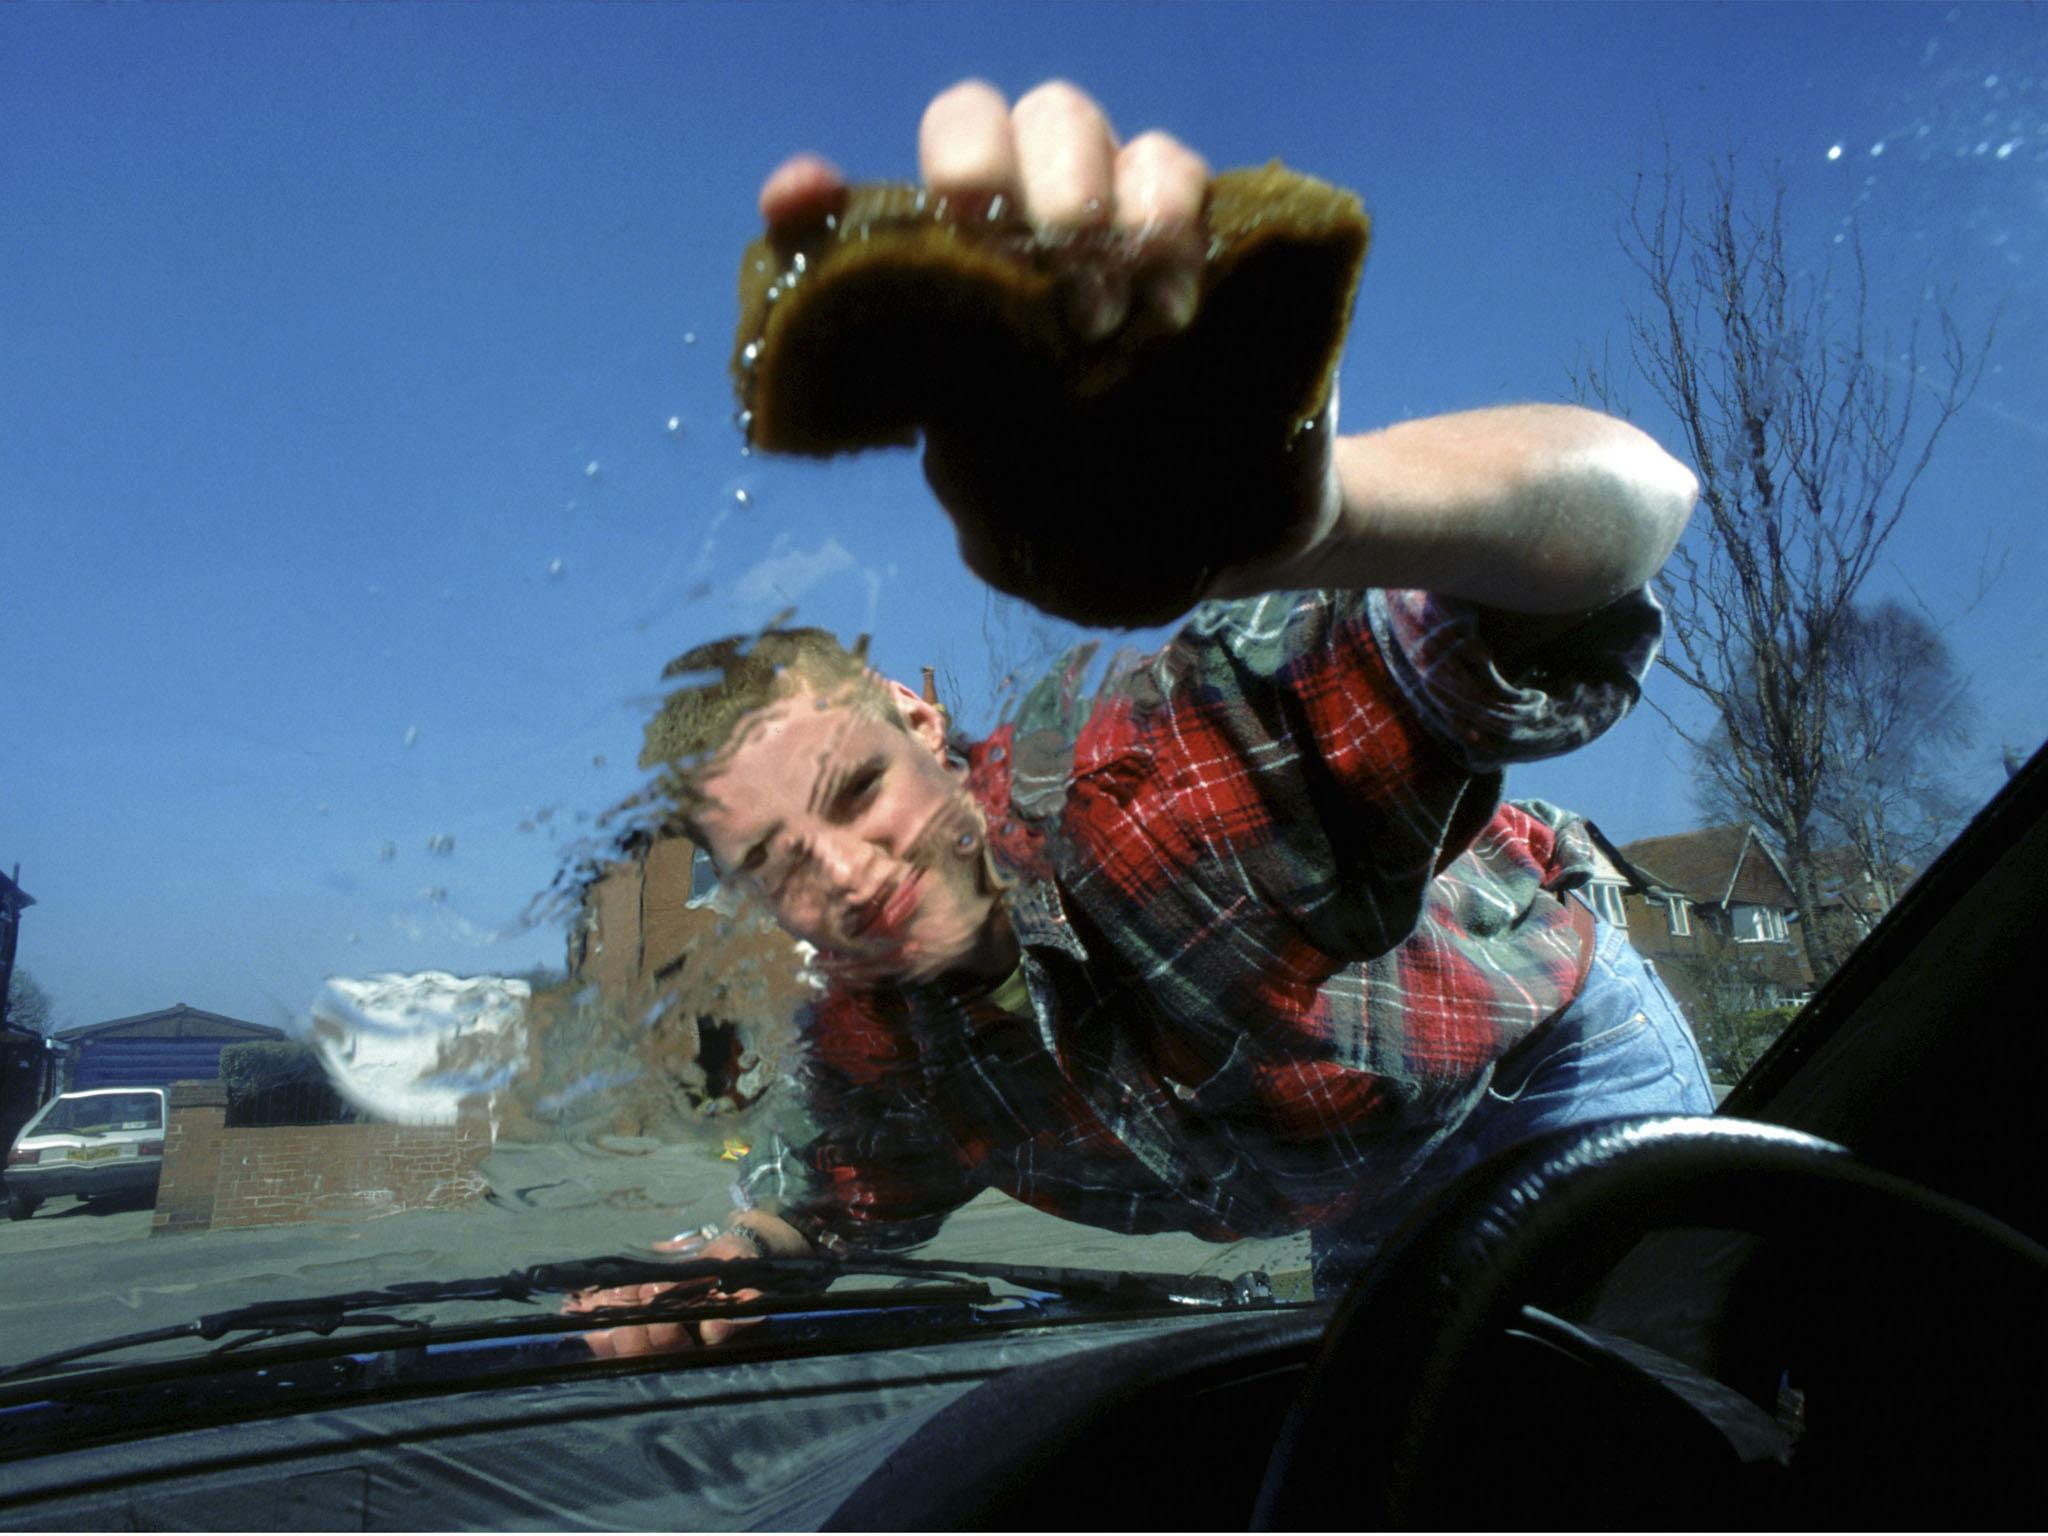 Car washes: a selection of articles